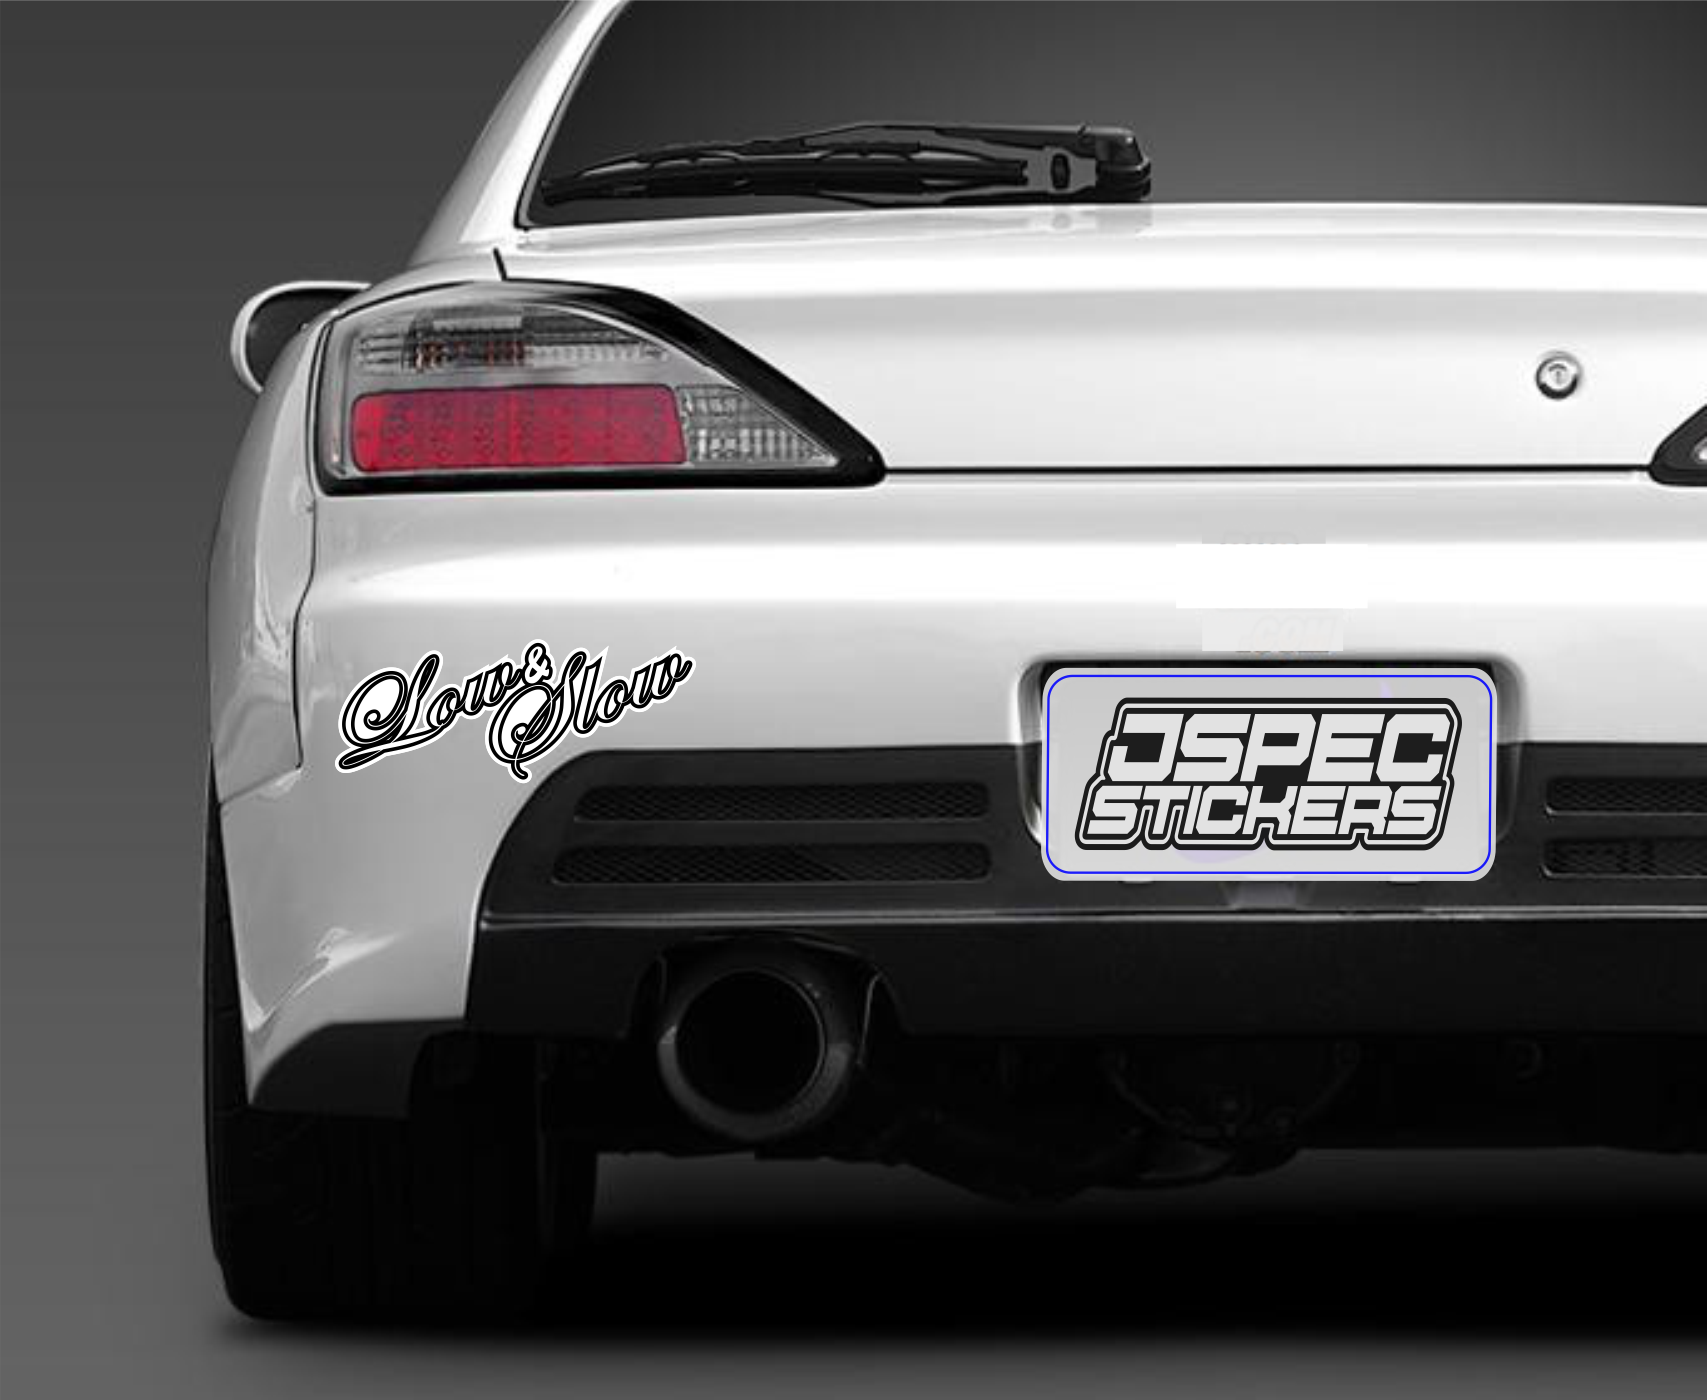 LOW AND SLOW BUMPER STICKER - Jspec Stickers